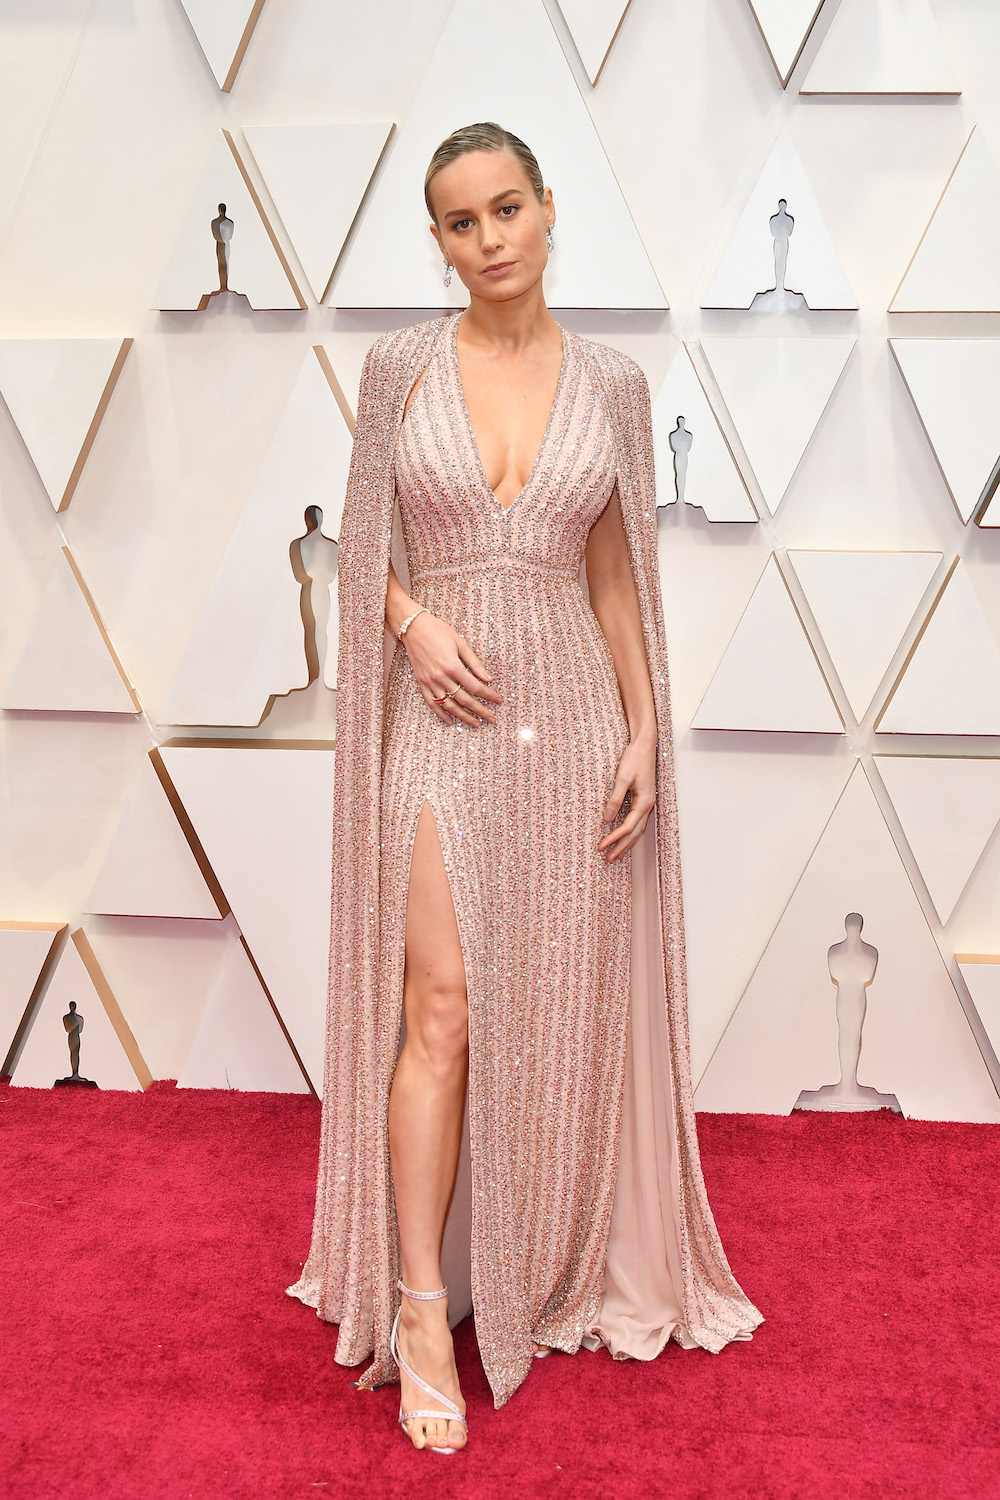 Caped Crusaders and Hooded Gowns Kept the Oscars Red Carpet Interesting